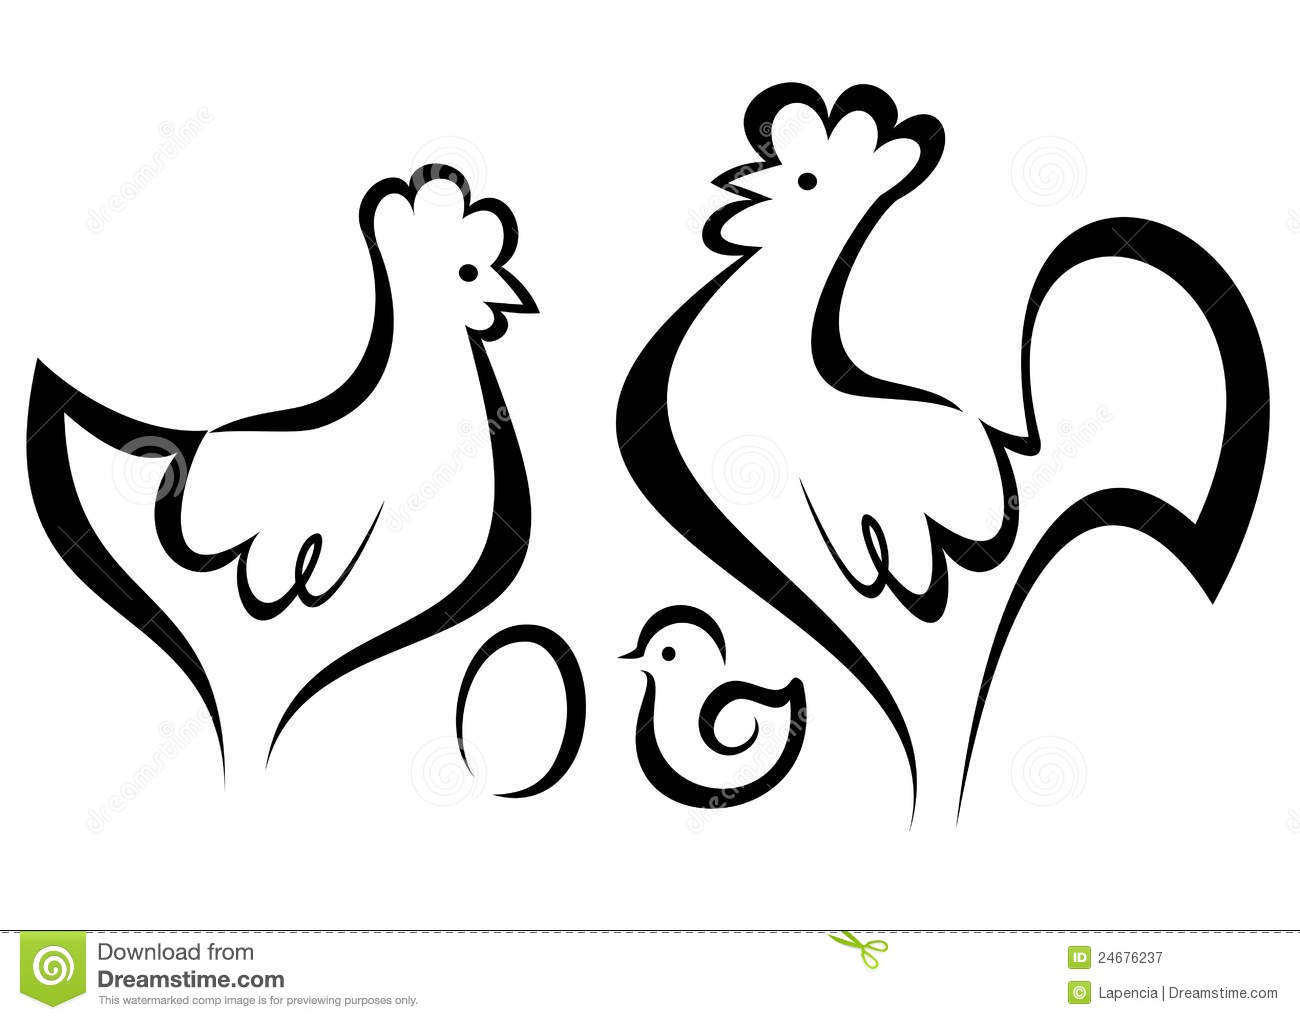 Hen Drawing Rooster Isolated Gm605754978 103851289 further Funny Chicken Birthday Card Game Old besides Bald Eagle Tattoos moreover Stock Illustration Stylized Rooster Symbol Year Black Isolated White Background Image67968395 likewise Chicken footprints clip art. on rooster clip art